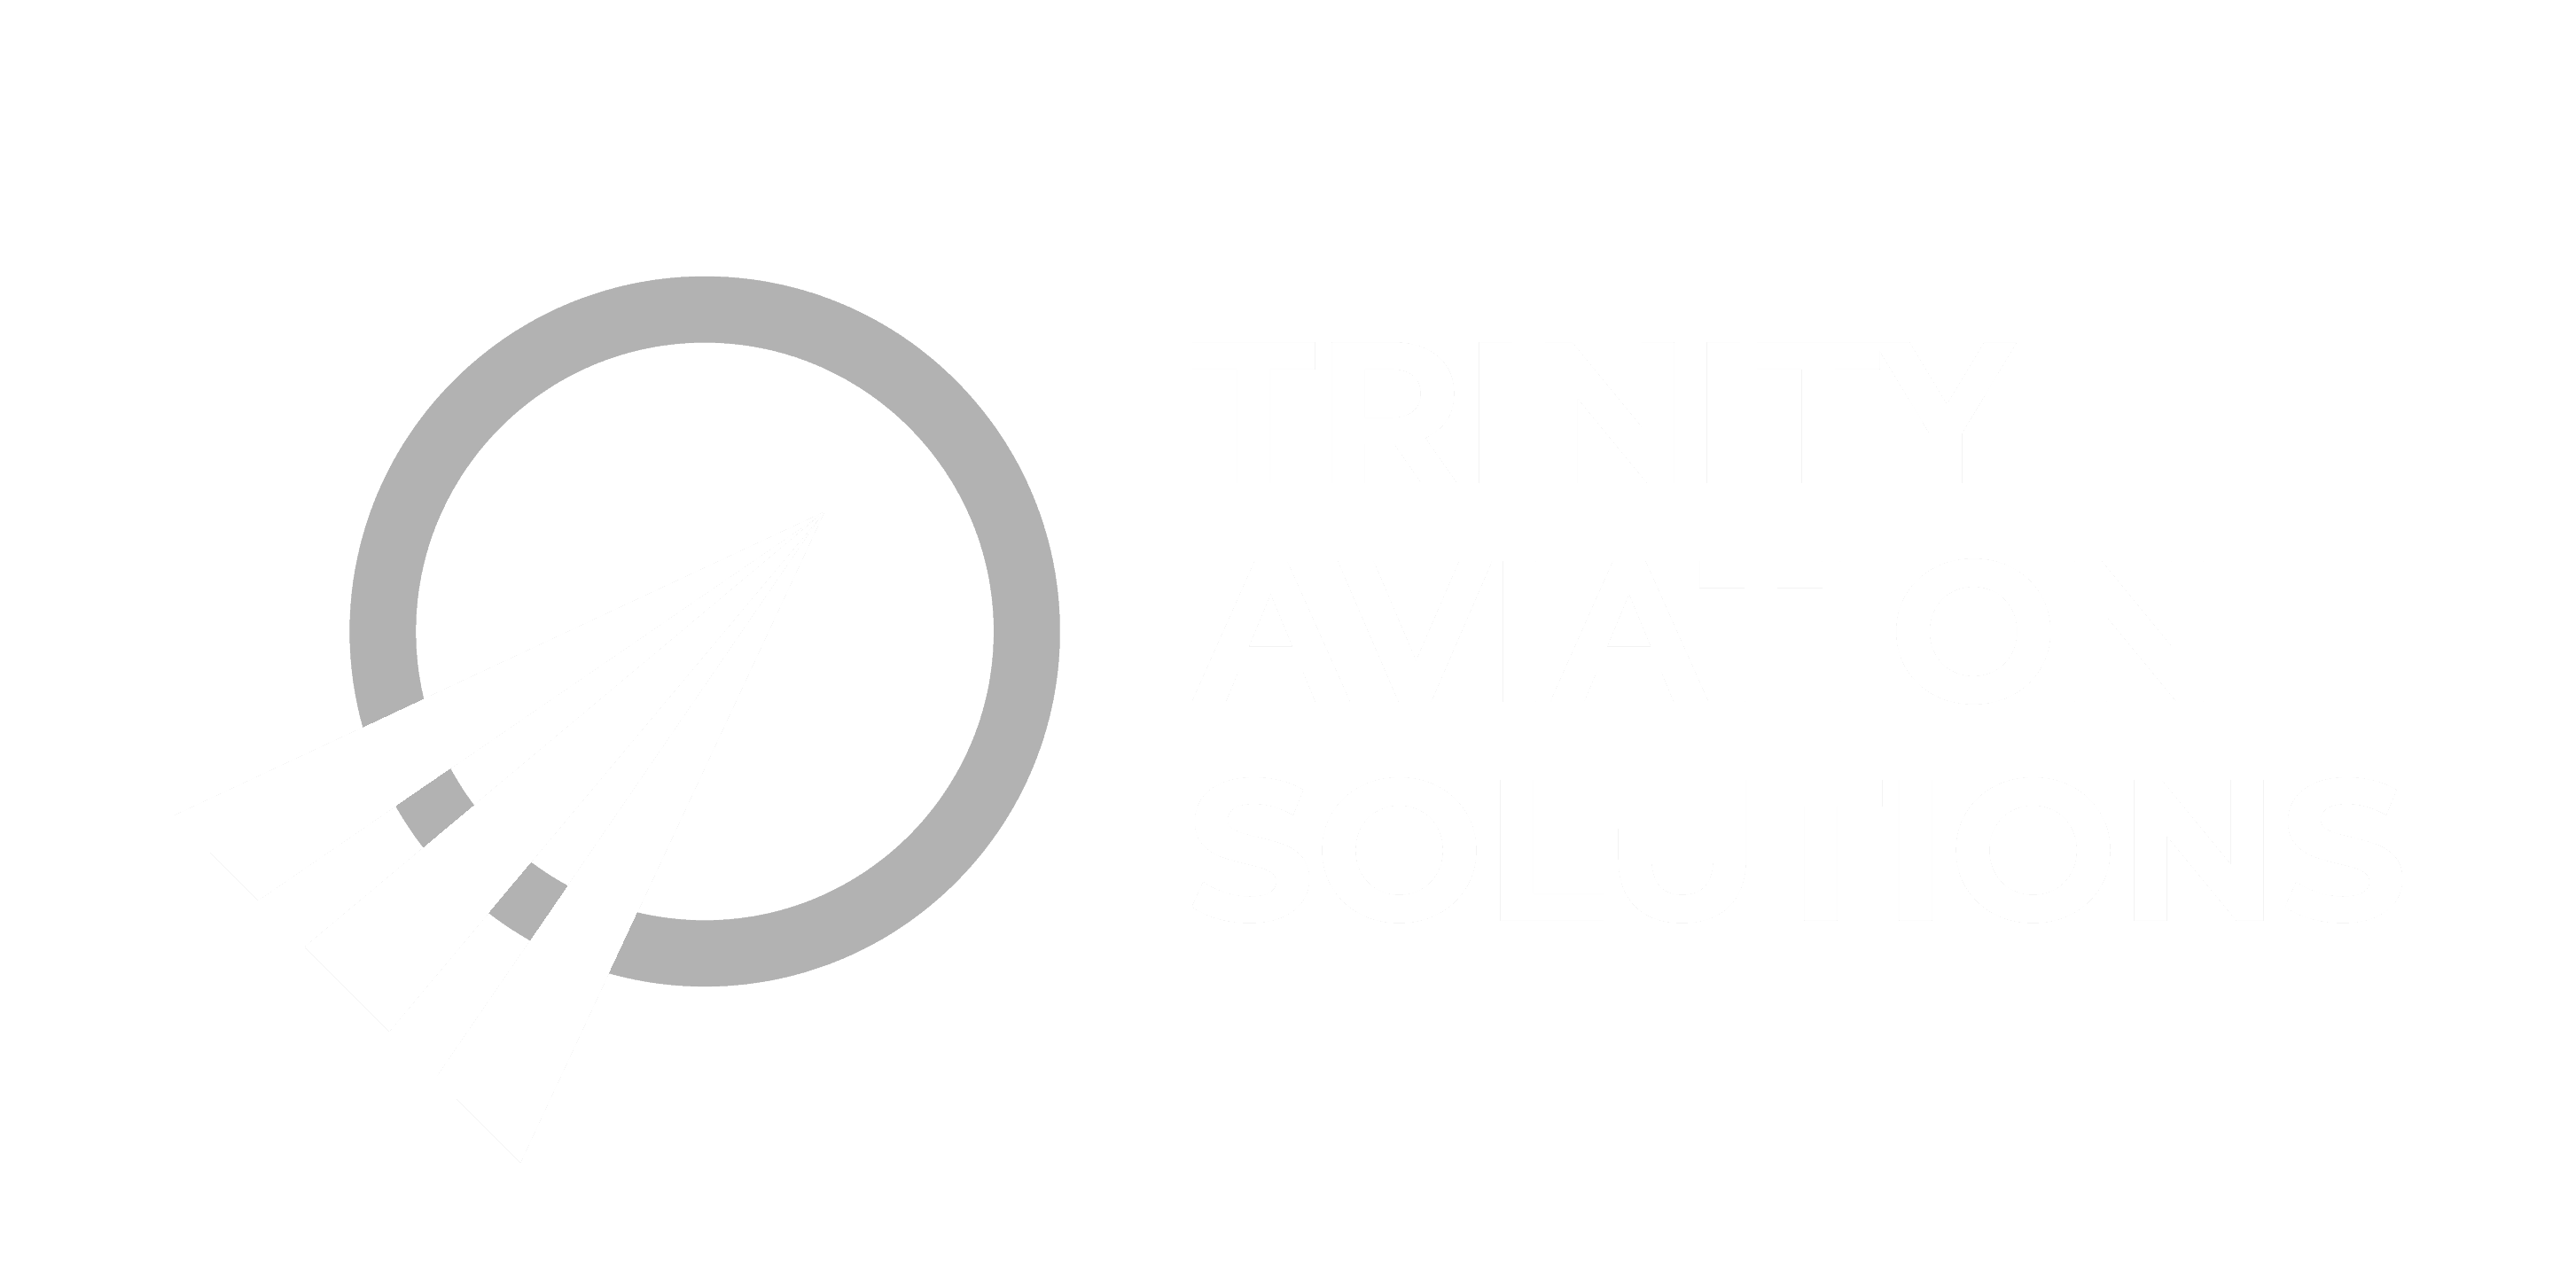 Trinity Aviation Solutions Logo